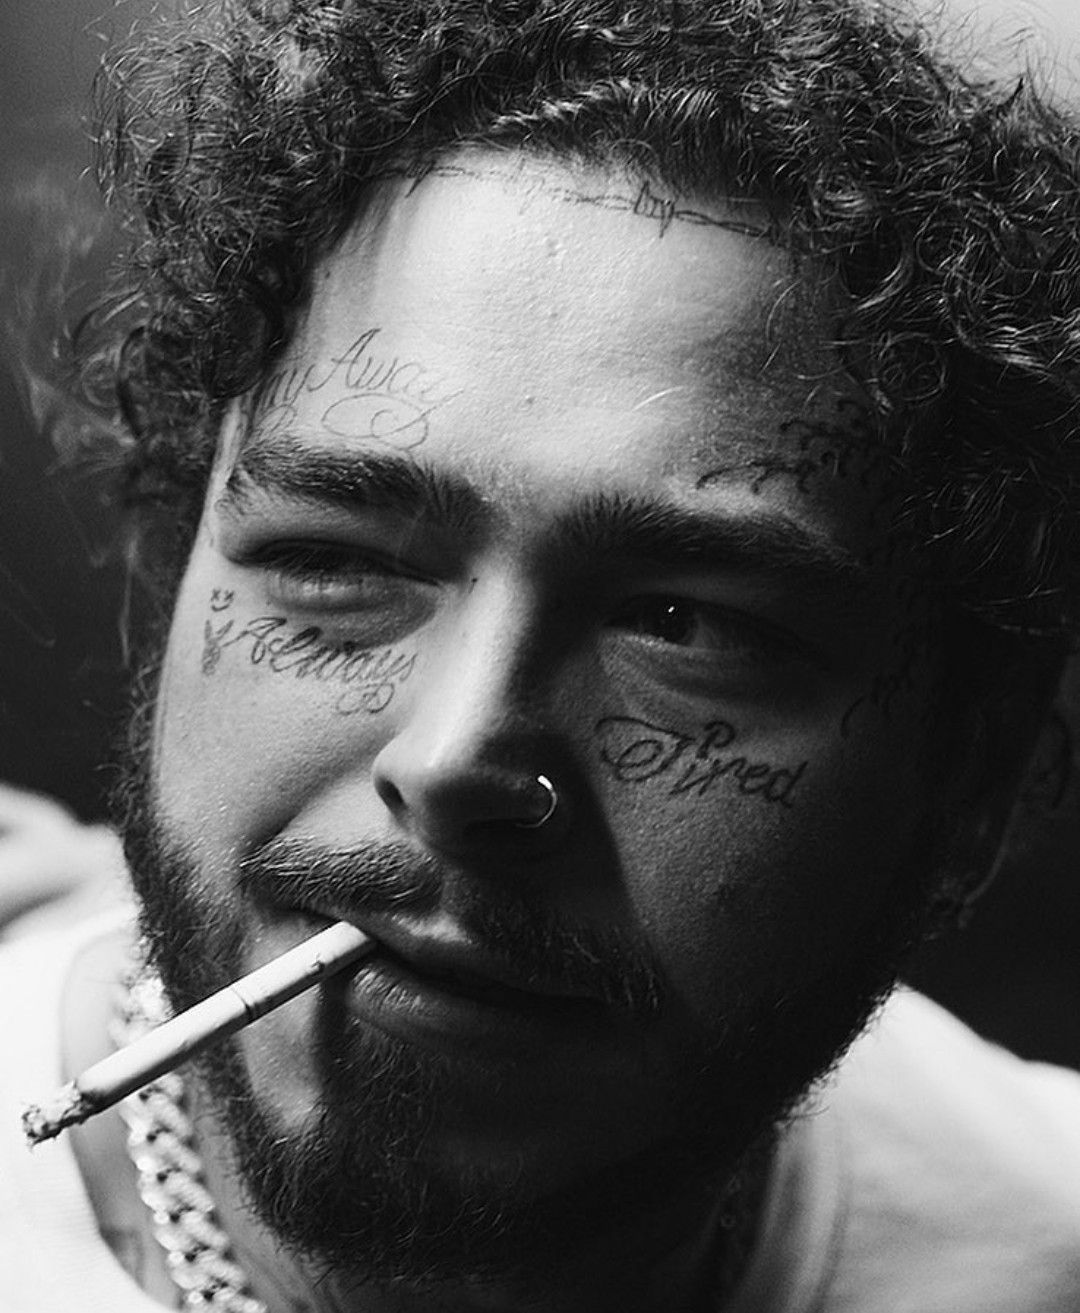 Post Malone #postmalonewallpaper Post Malone #postmalonewallpaper Post Malone #postmalonewallpaper Post Malone #postmalone